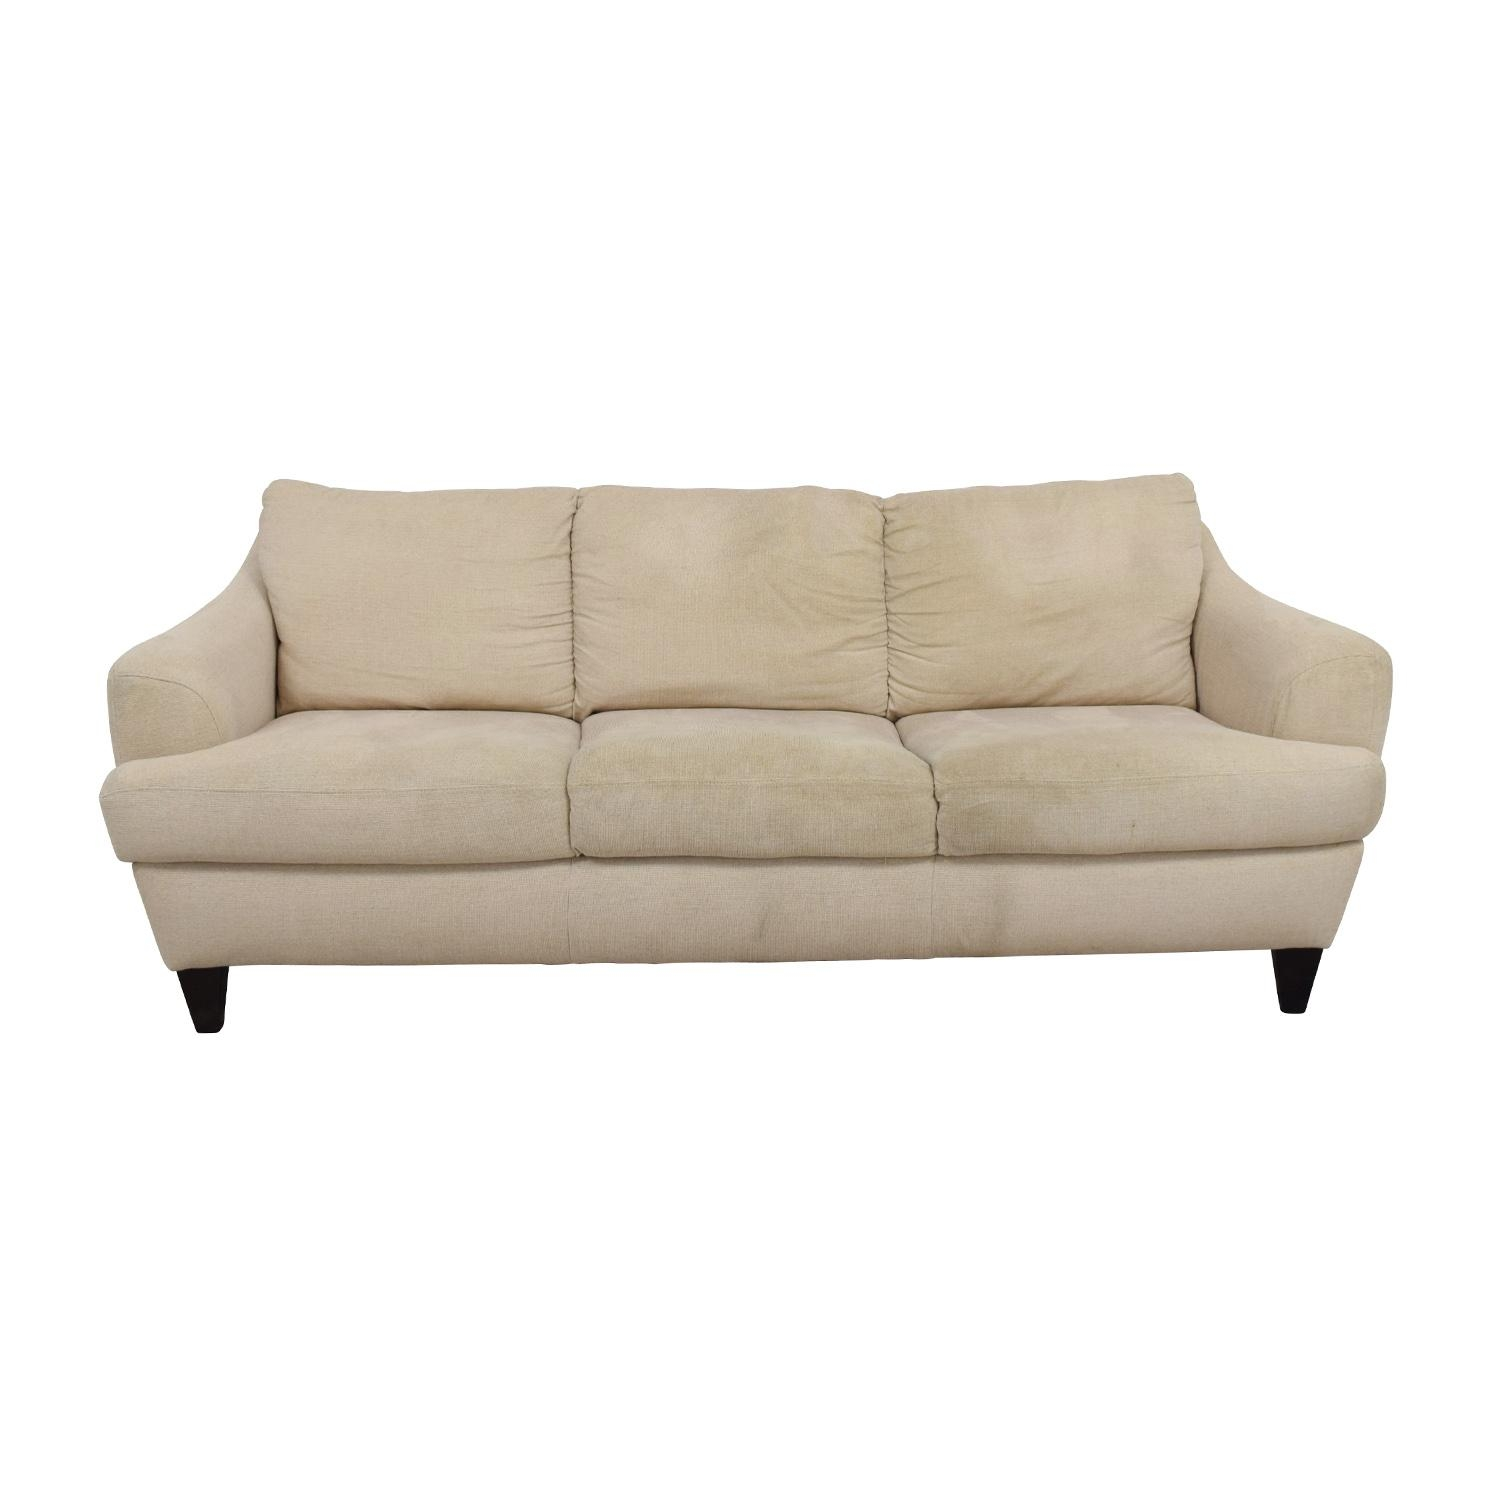 56% Off - Italsofa Italsofa Beige Tweed Three Cushion Fabric Sofa intended for Tweed Fabric Sofas